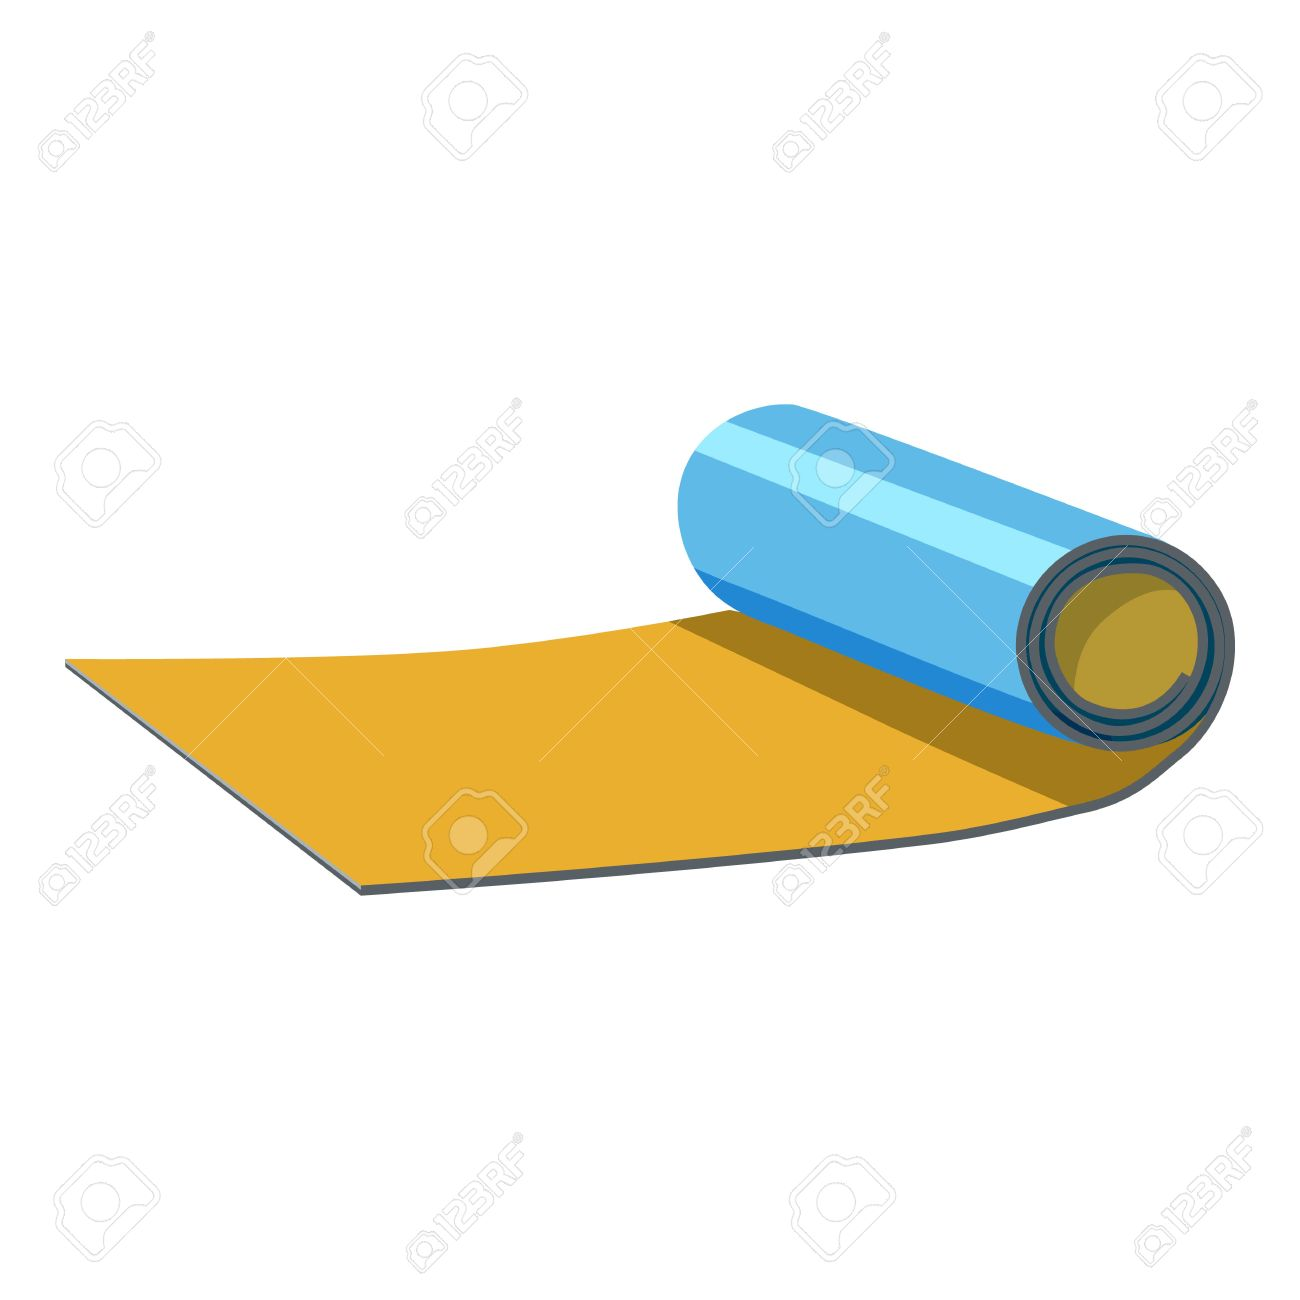 Rolled up mat icon  Cartoon illustration of rolled up map vector